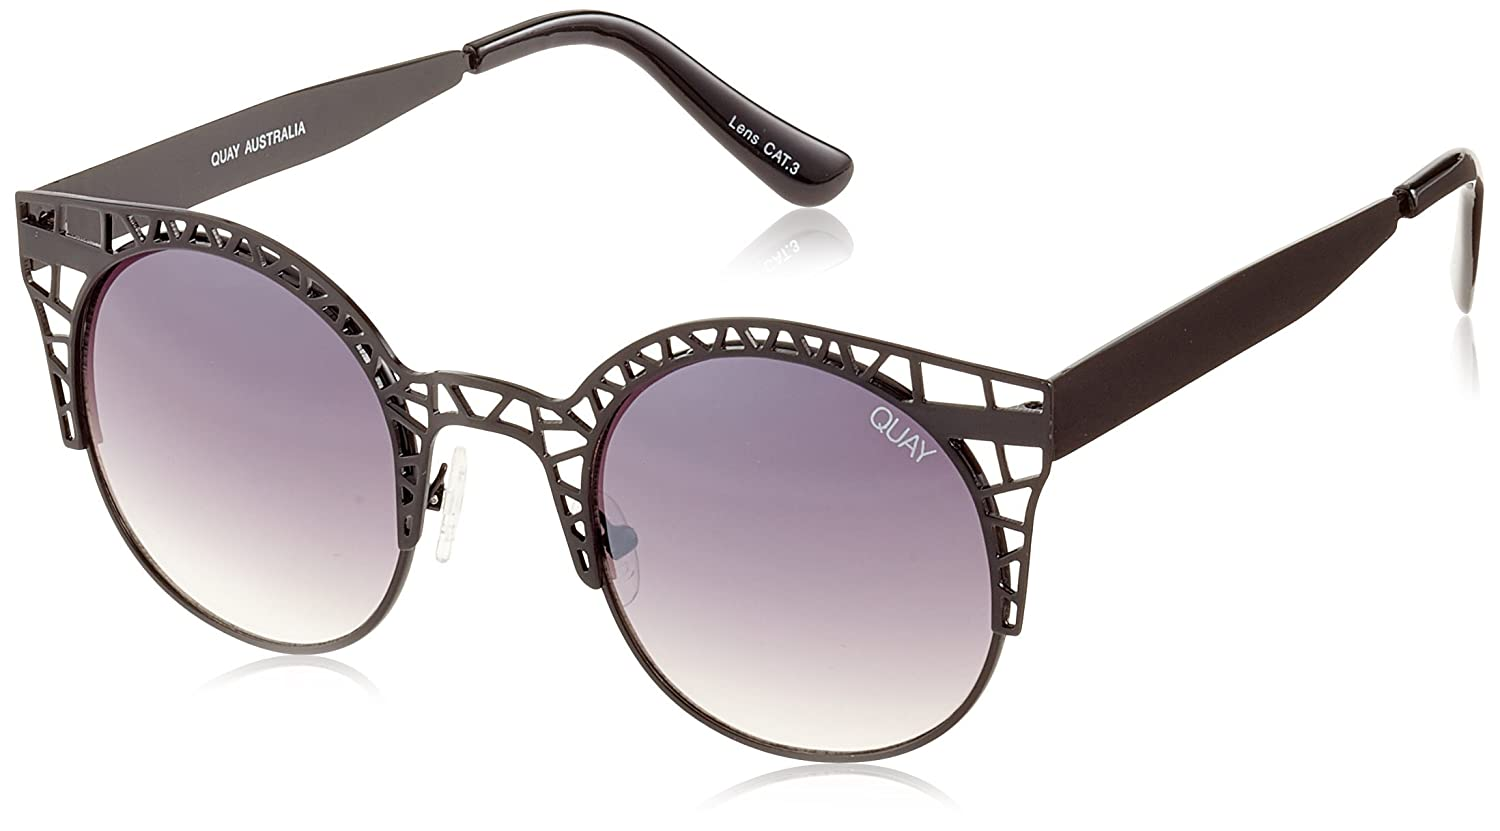 41ee48facf75c CLASSIC SWAGGER  Quay s FLINT sunnies got that classic swagger. Featuring  an accented brow-line